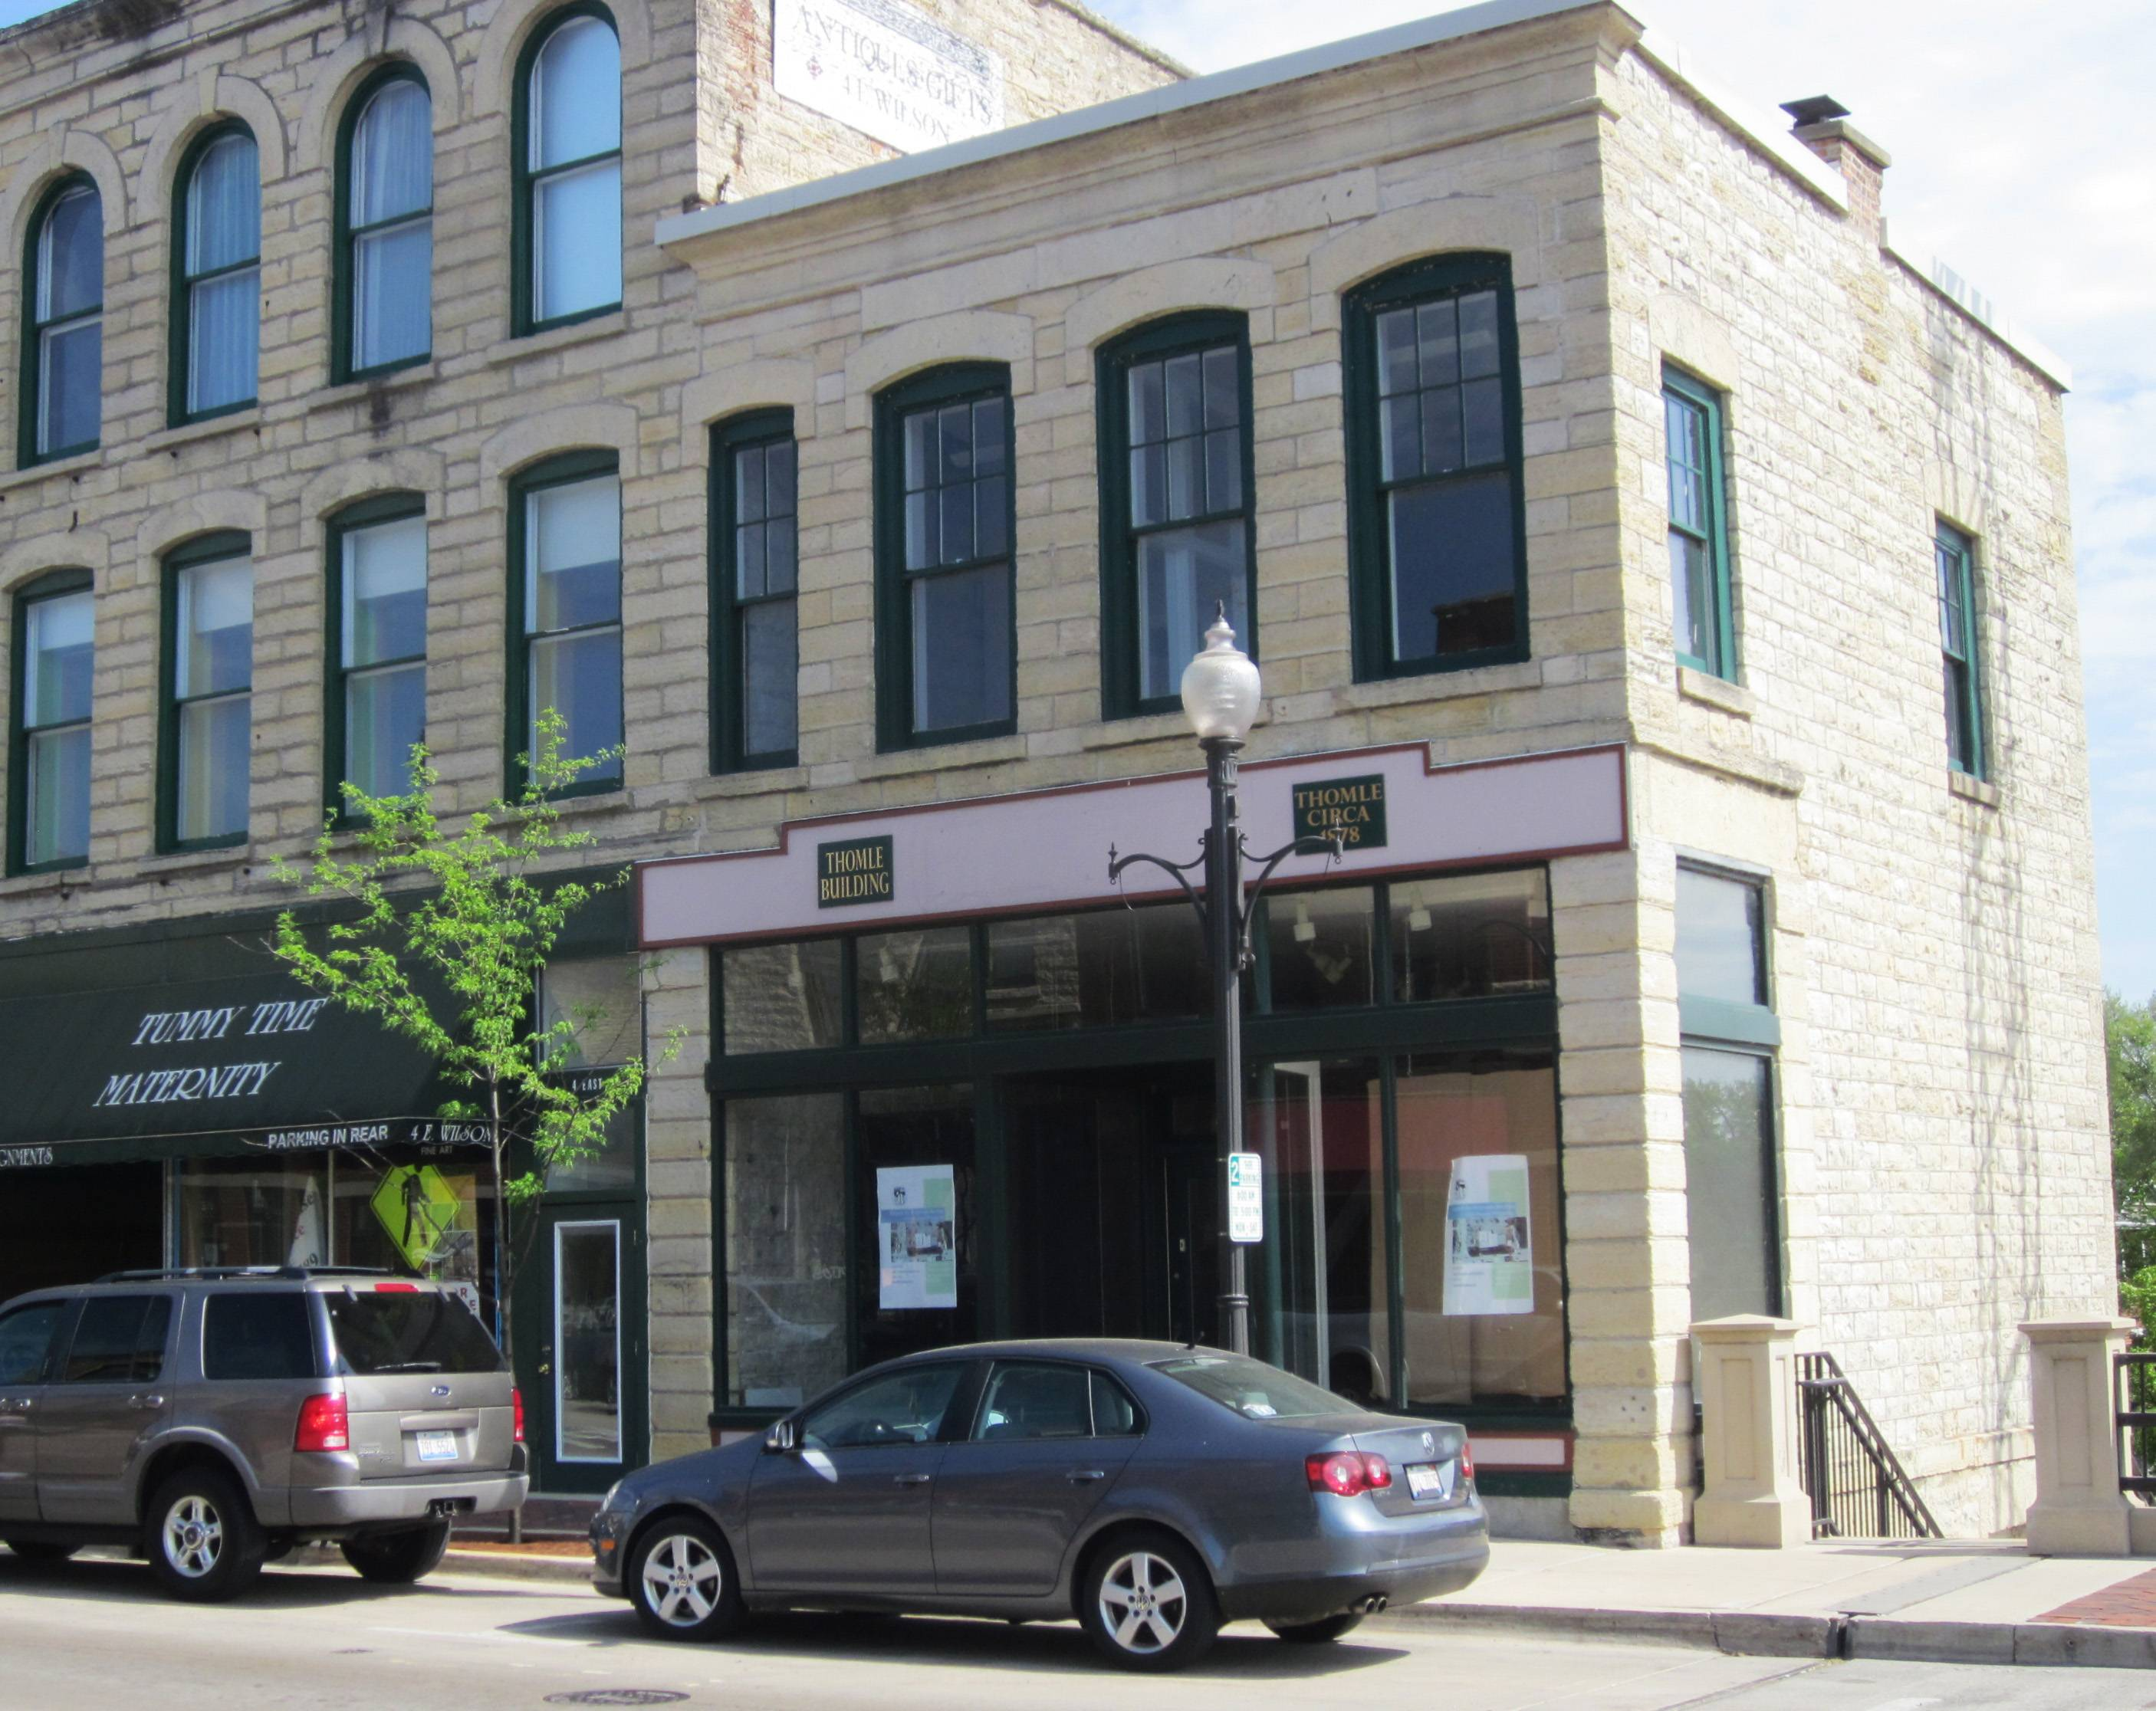 In the last month, the city has gotten about a dozen inquiries about the Thomle Building in downtown Batavia after a newspaper article reminded folks the city would sell it for $160,000.